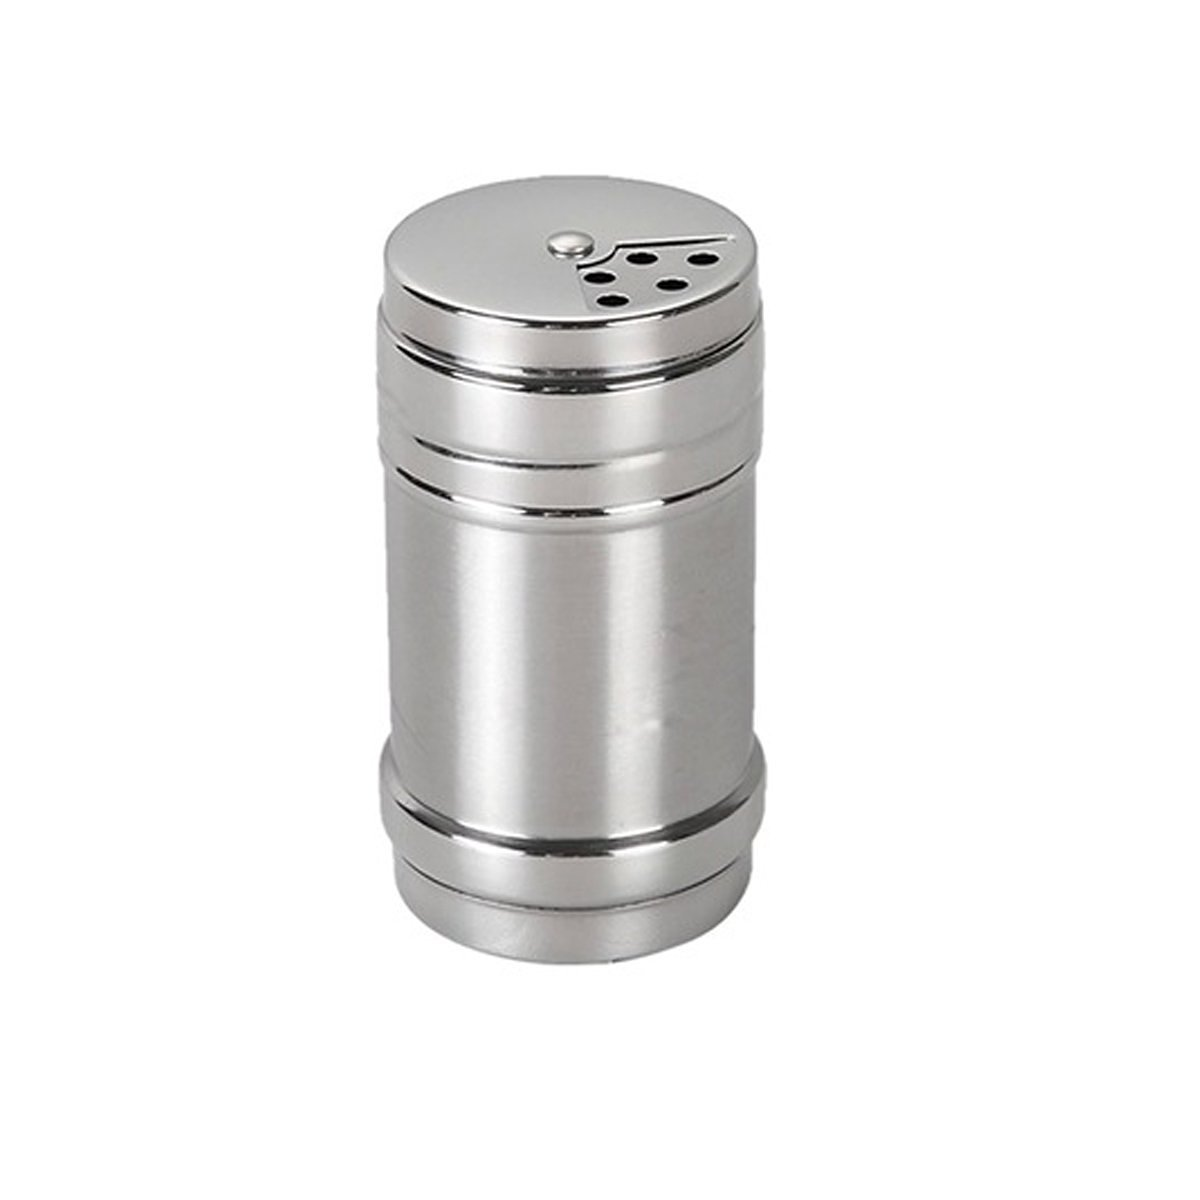 Verdental Stainless Steel Dredge Salt/Sugar / Spice/Pepper Shaker Seasoning Cans with Rotating Cover V-A-001